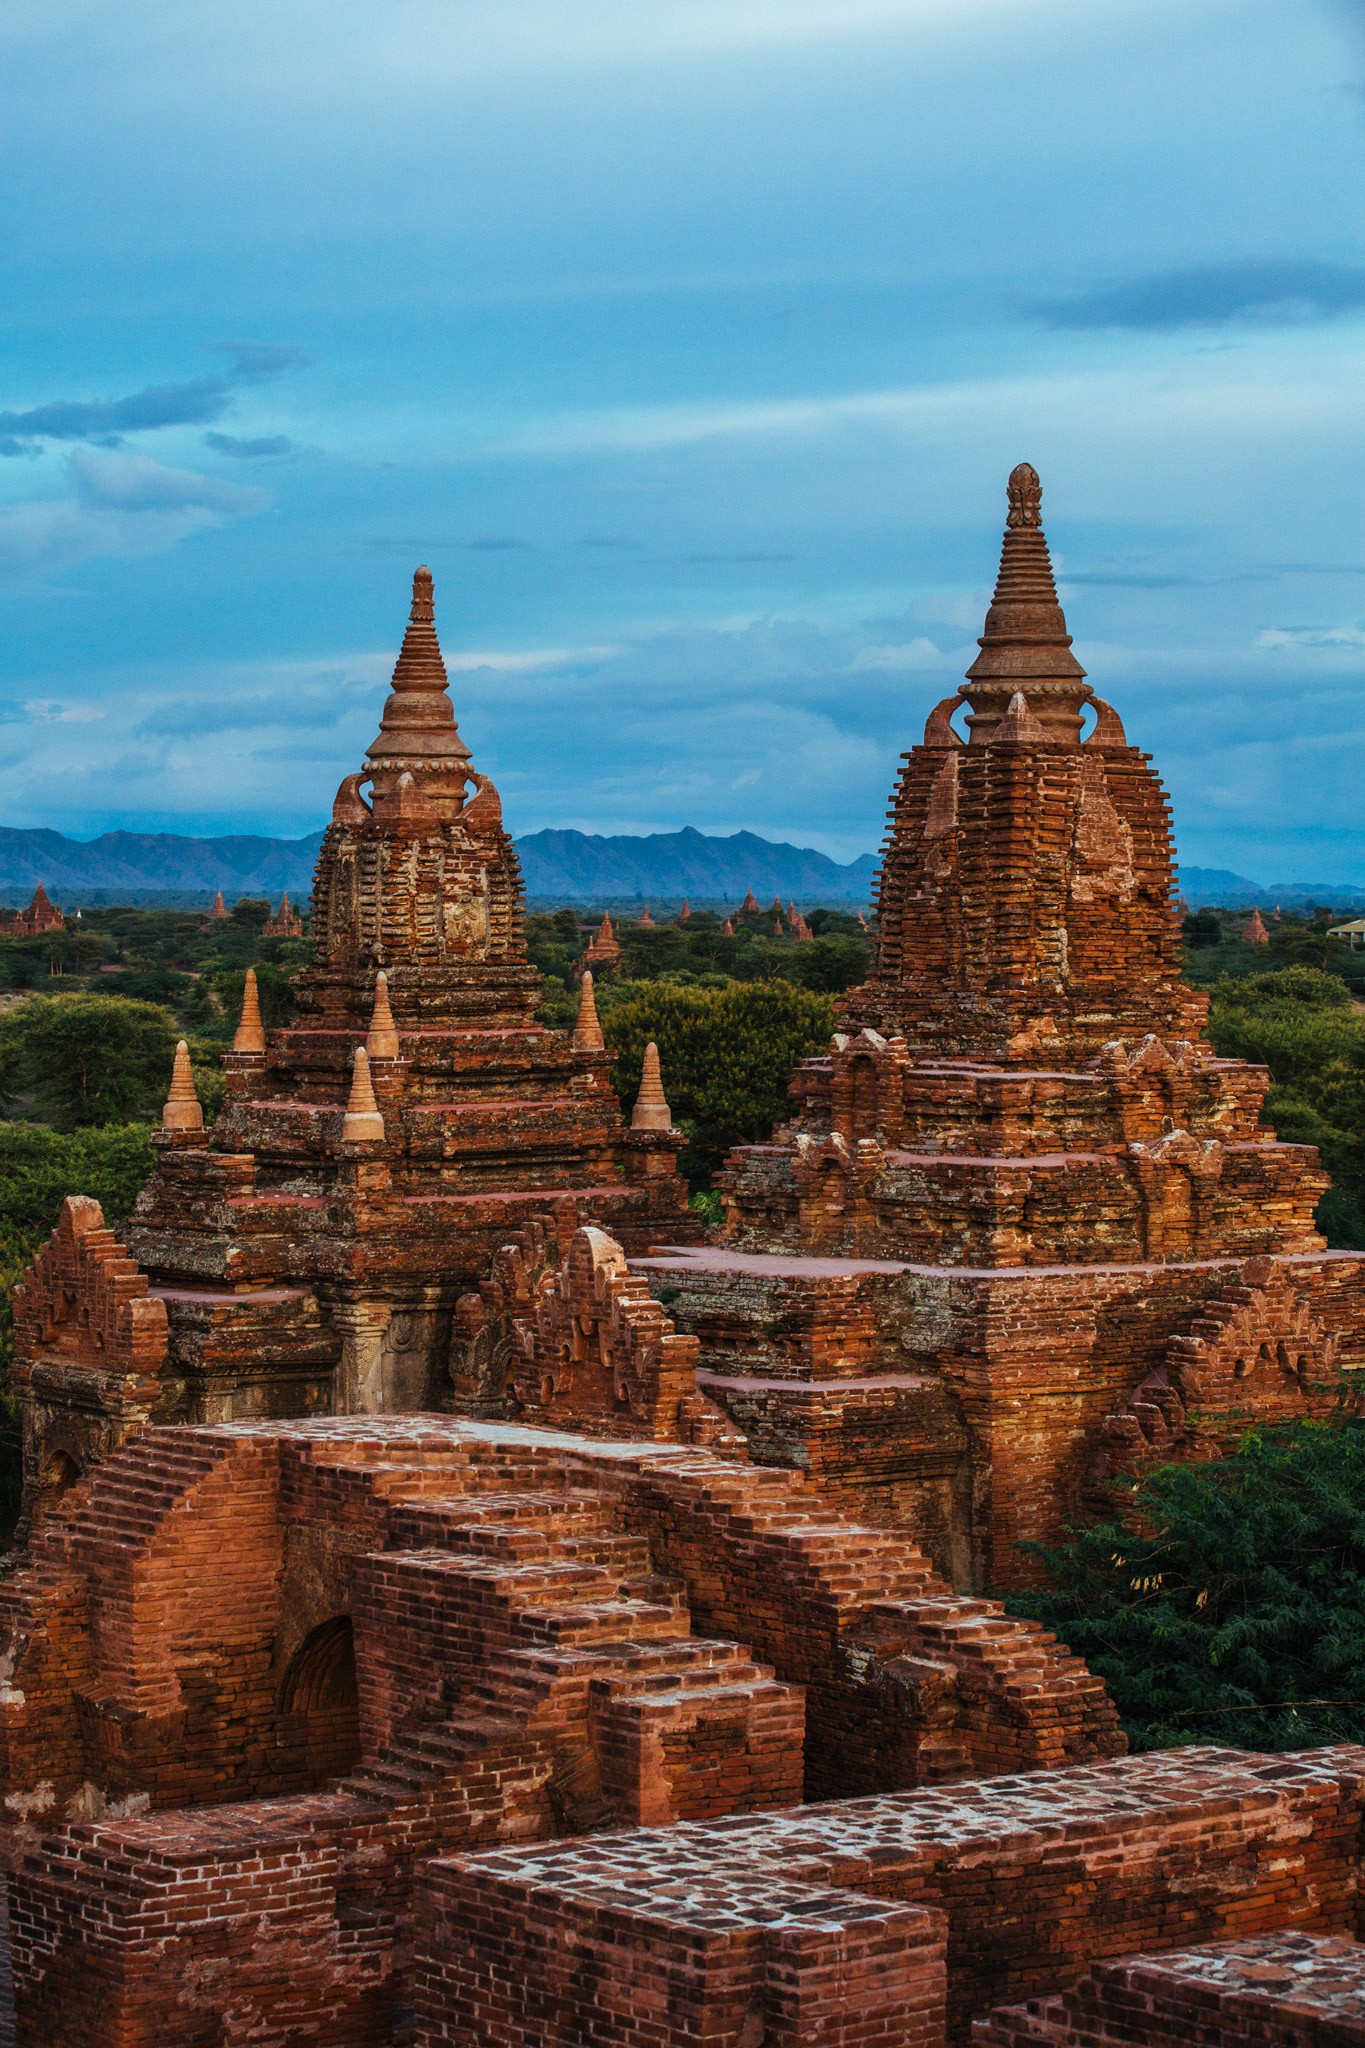 These are the hollow Gu-style temples that adorn most of this ancient landscape. They were built extensively from 1044 to 1287 and over the course of 250 years, Bagan's rulers and their wealthy subjects constructed well over 10,000 religious monuments